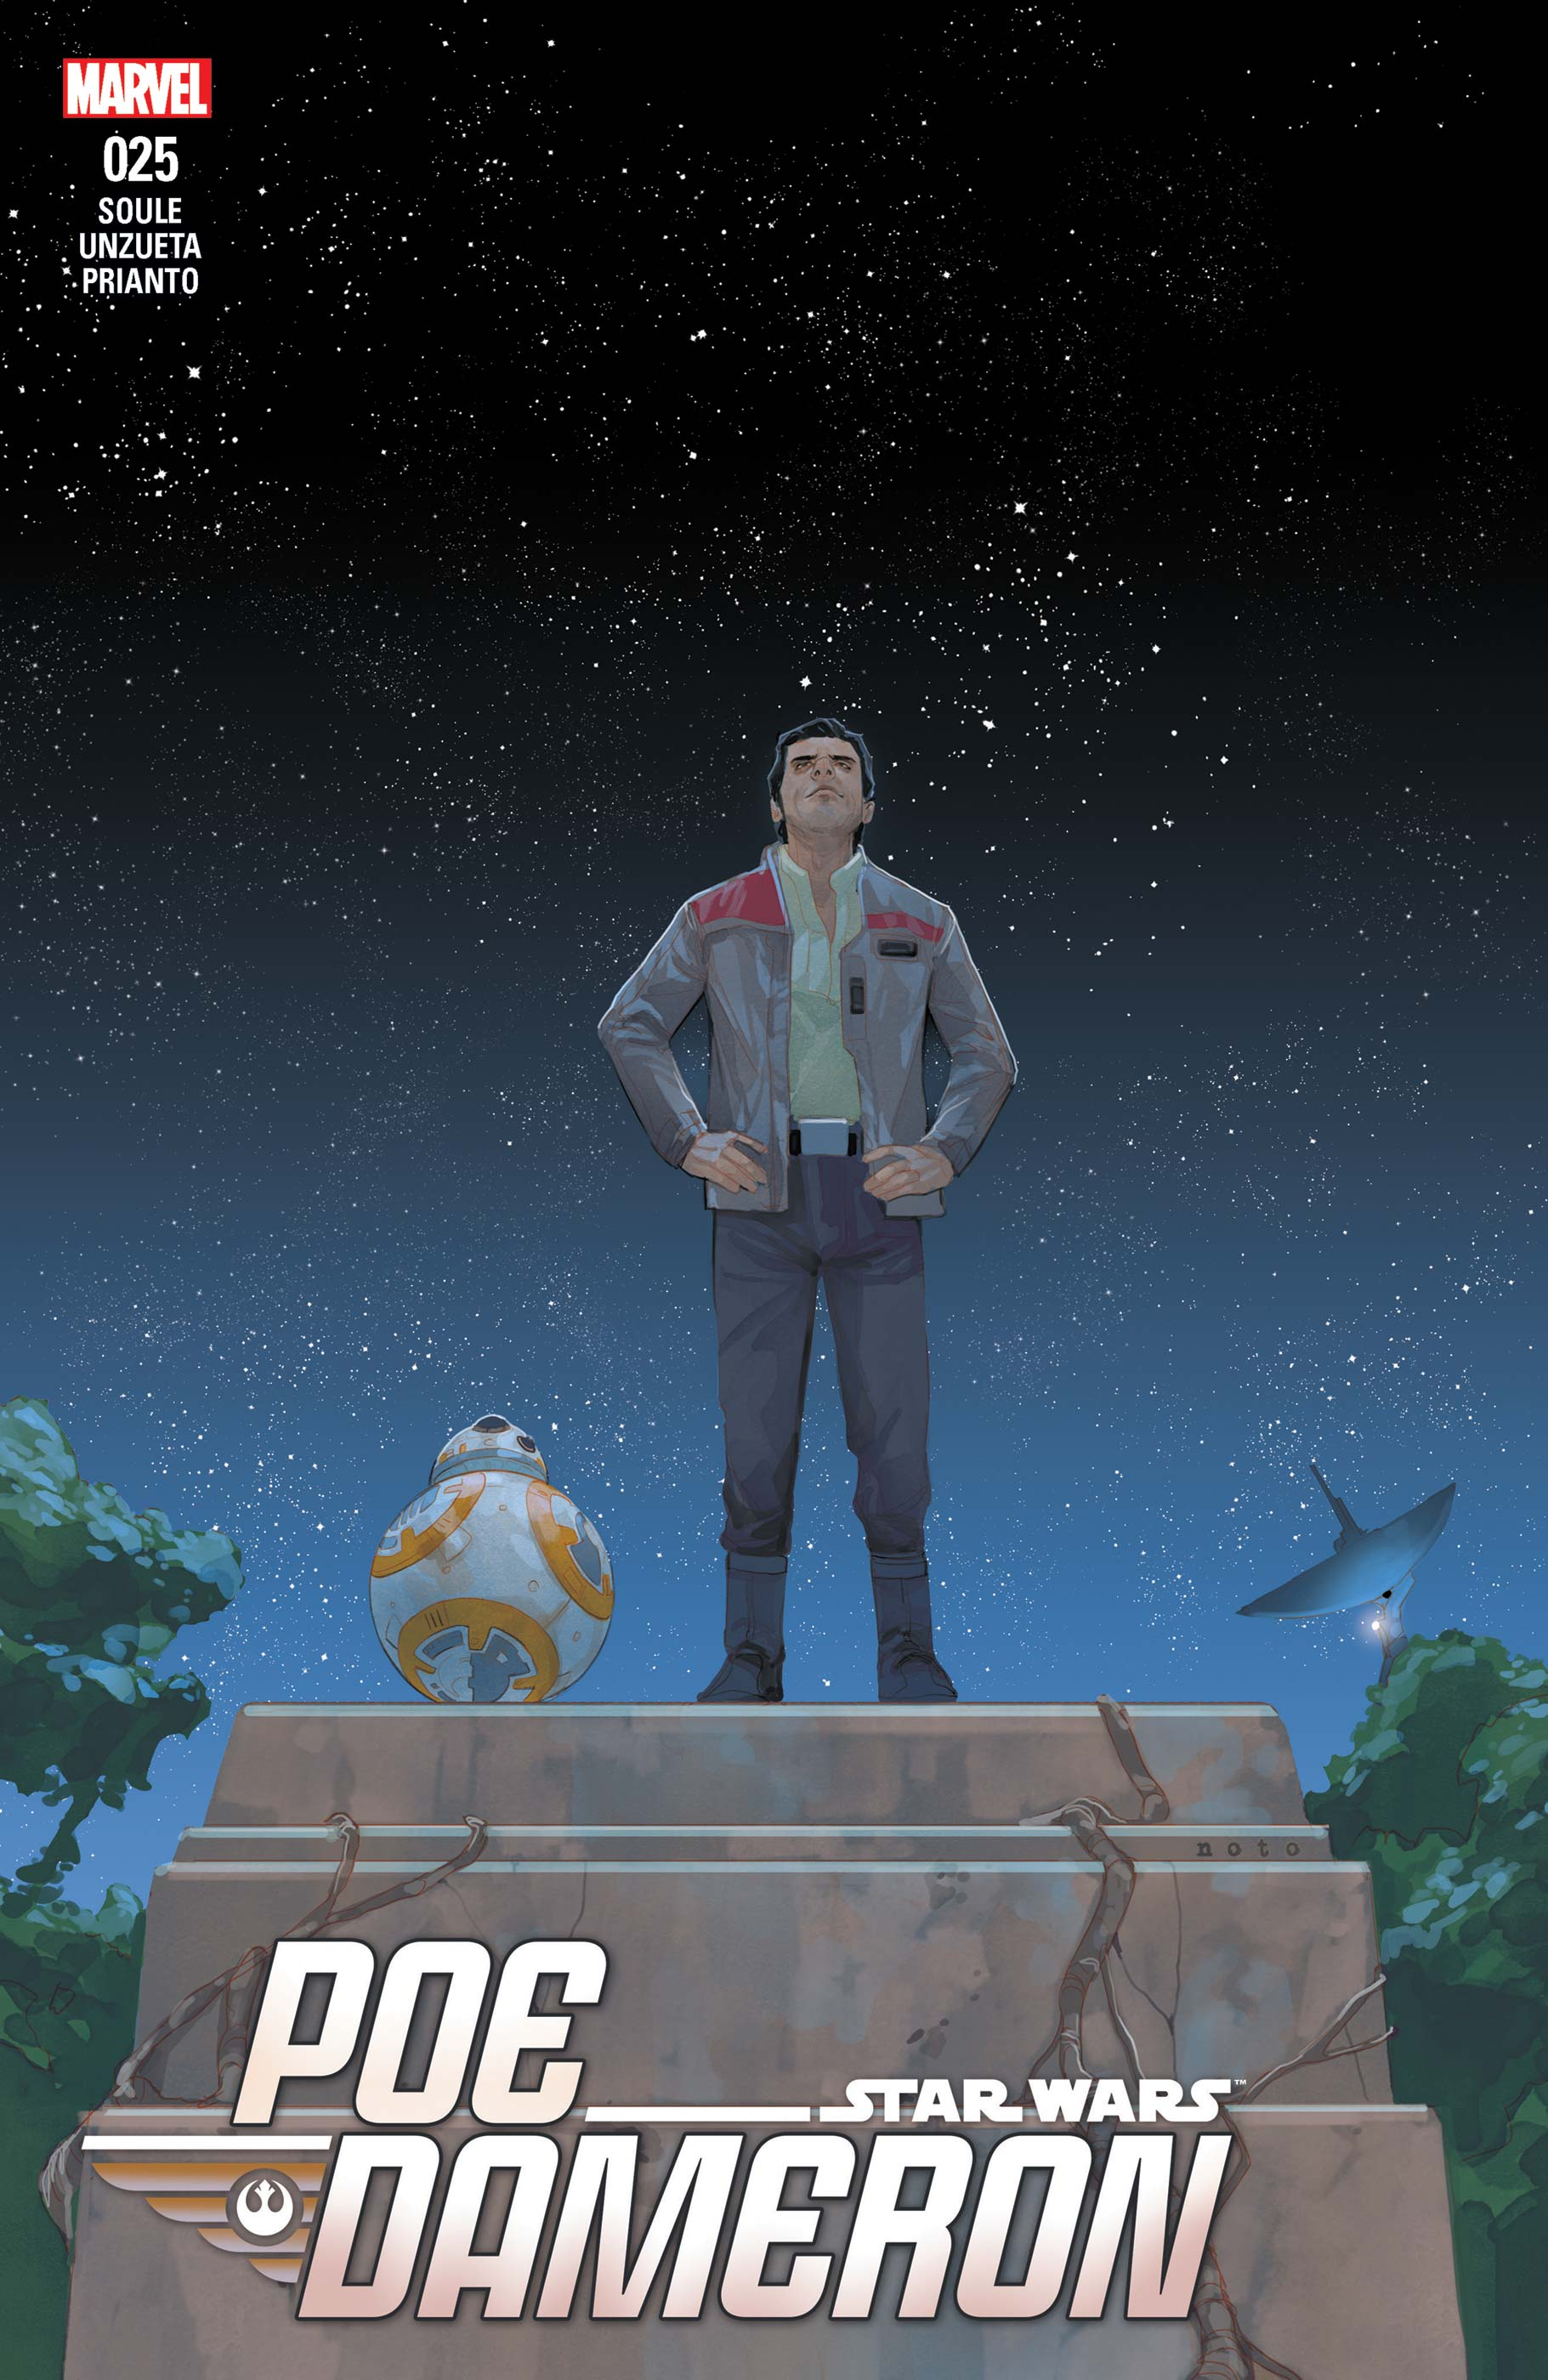 Star Wars: Poe Dameron (2016) #25